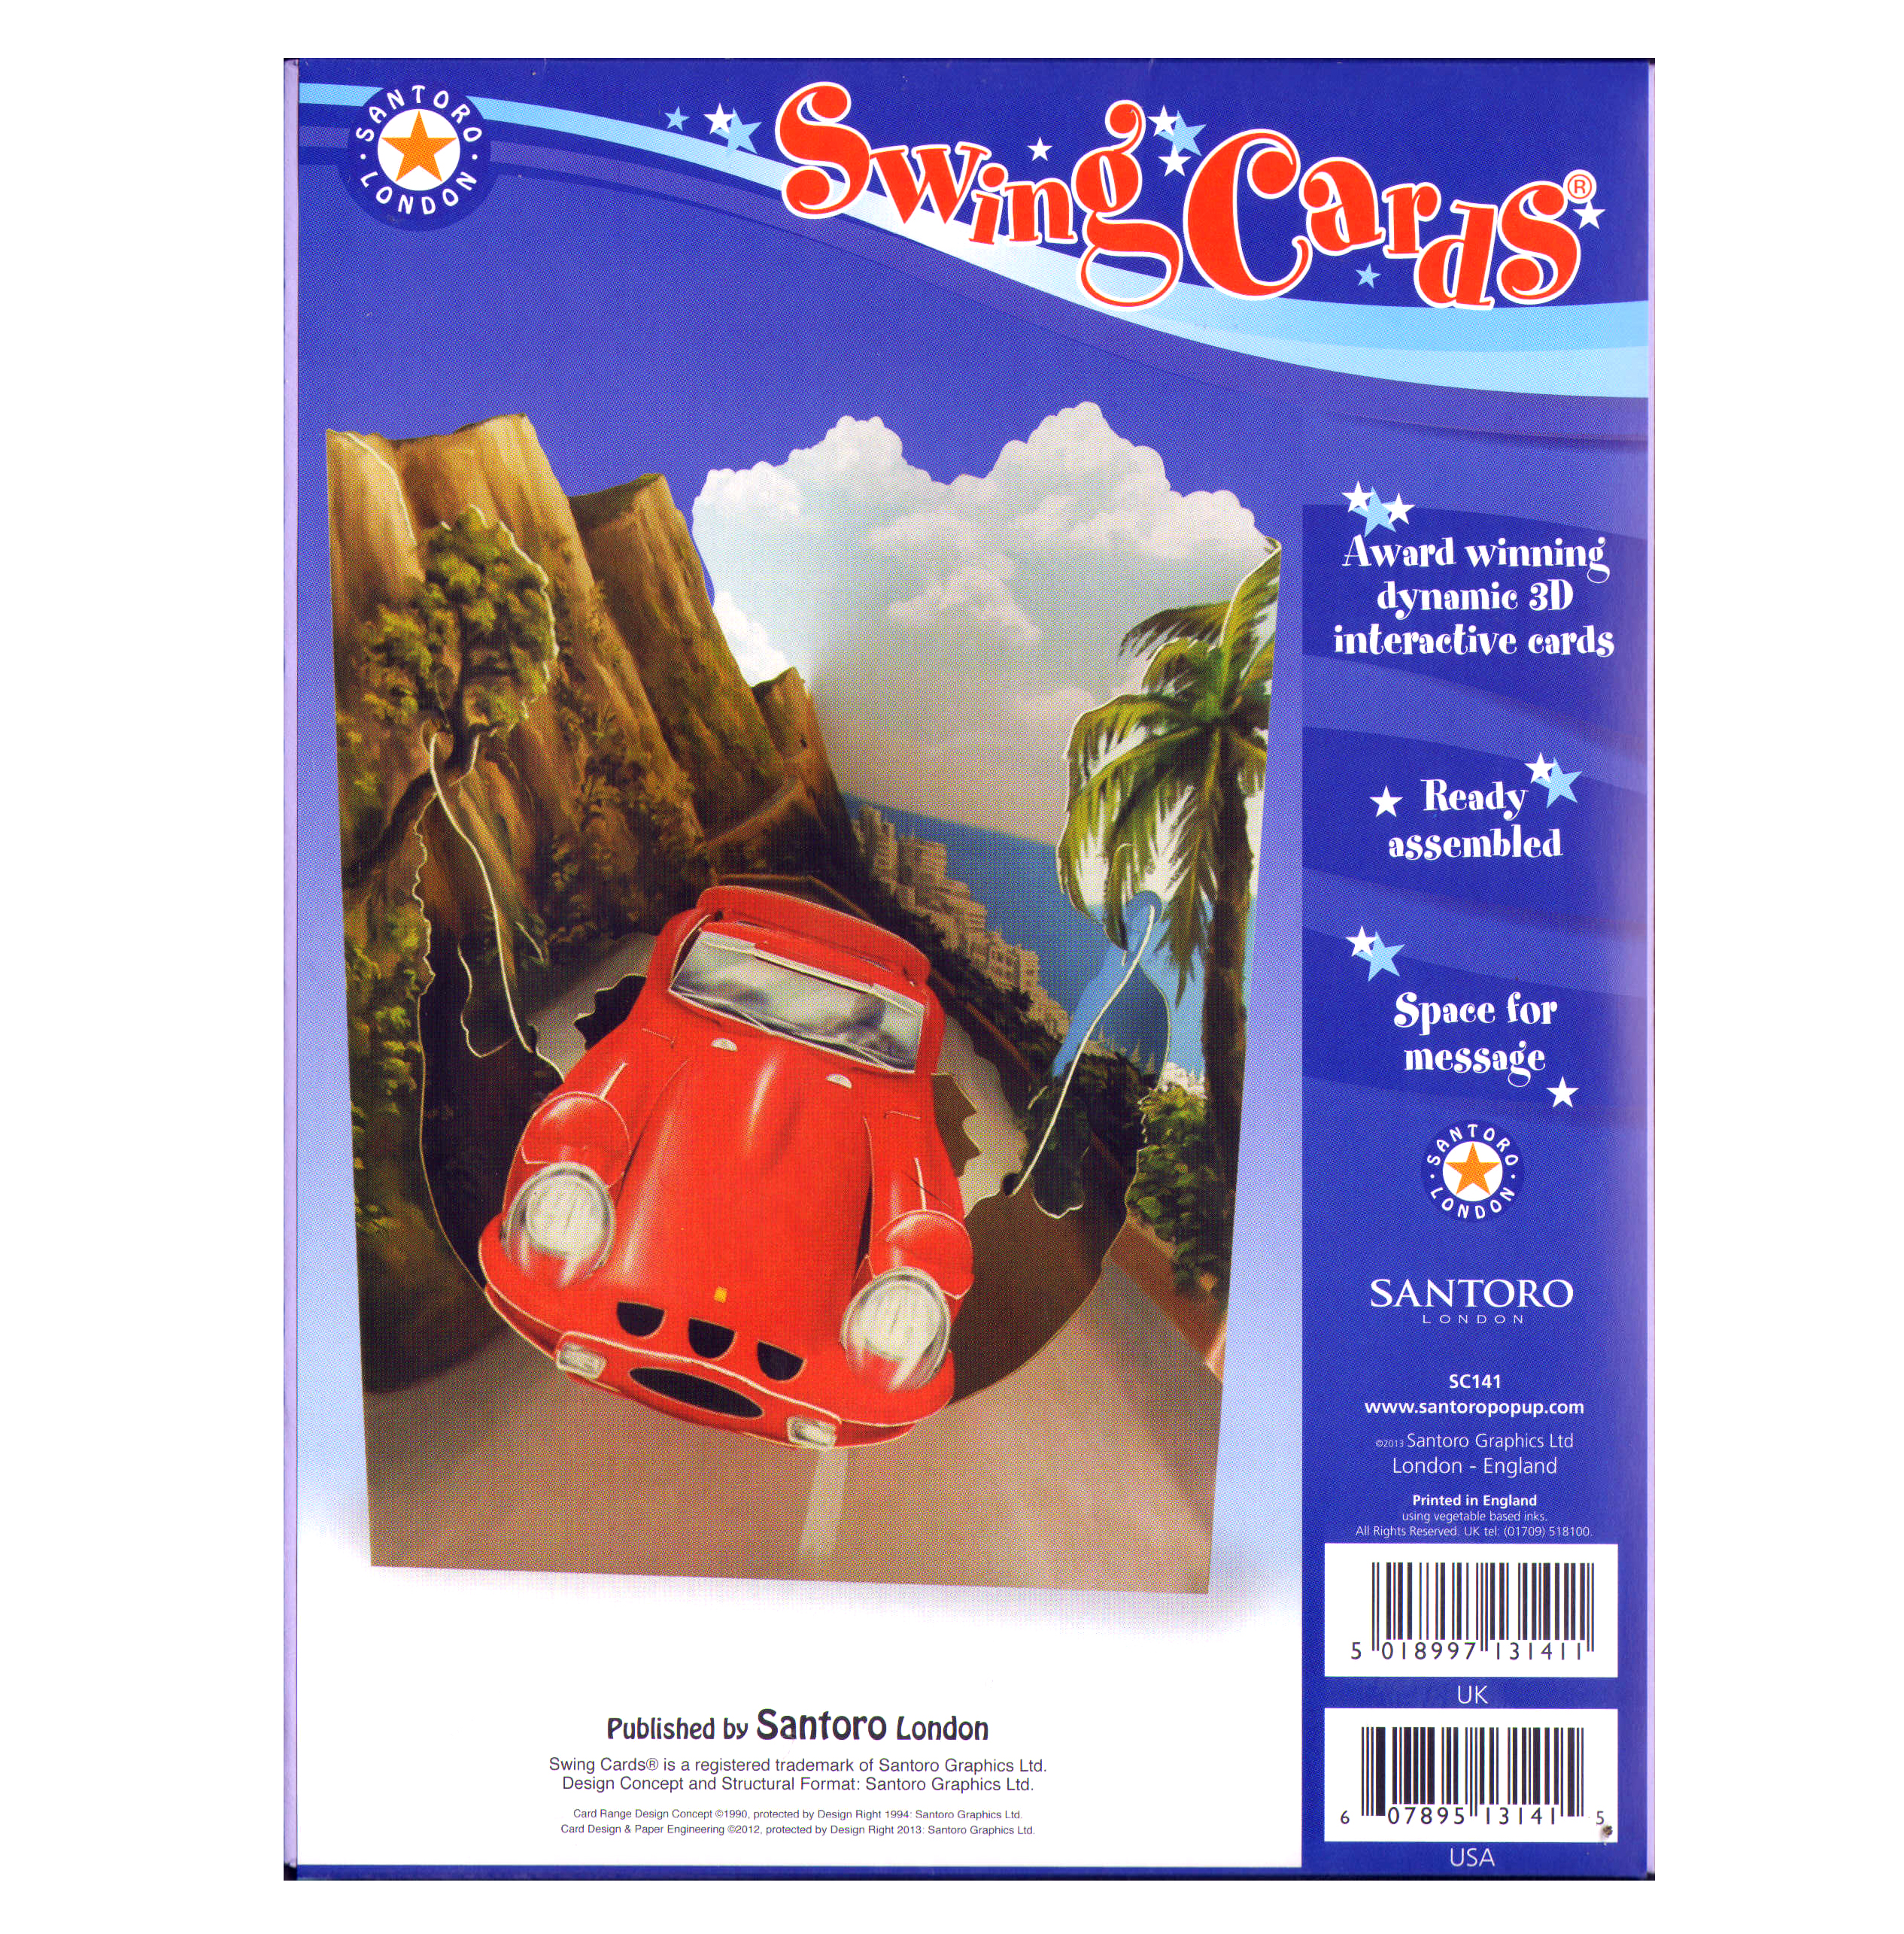 Sports car swing card award winning dynamic 3d interactive sentinel sports car swing card award winning dynamic 3d interactive greetings card kristyandbryce Image collections